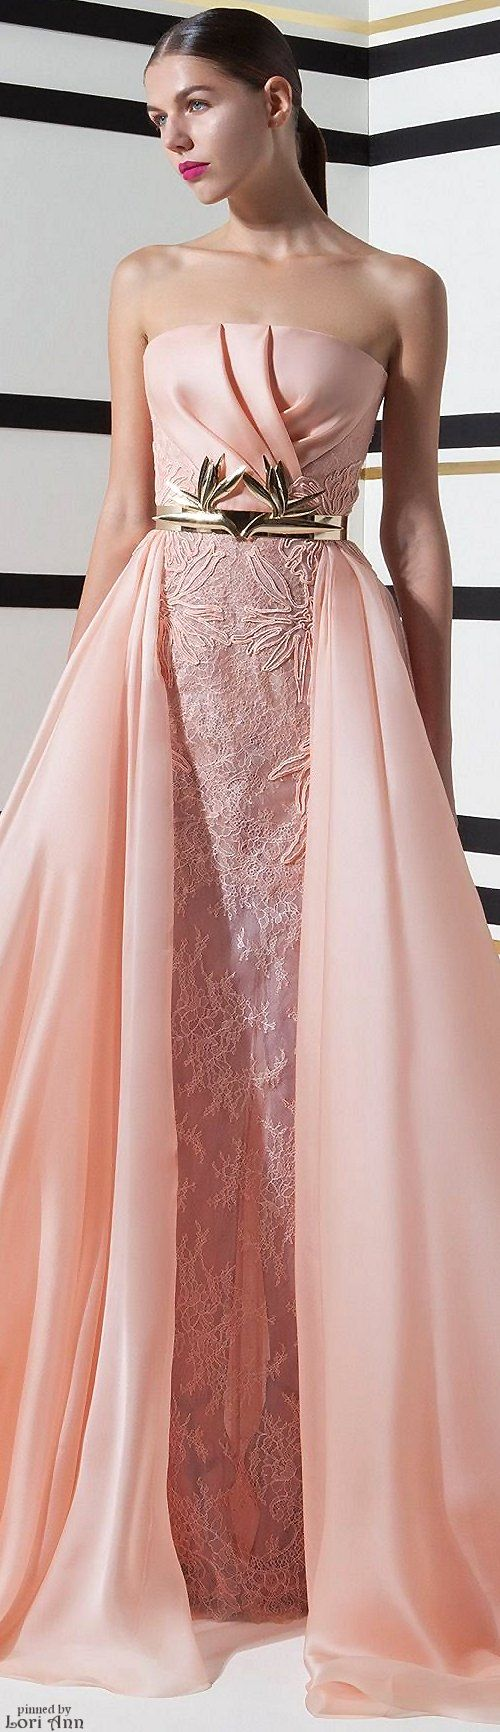 Basil Soda Spring 2016 RTW.....does this make a nice wedding dress or no?